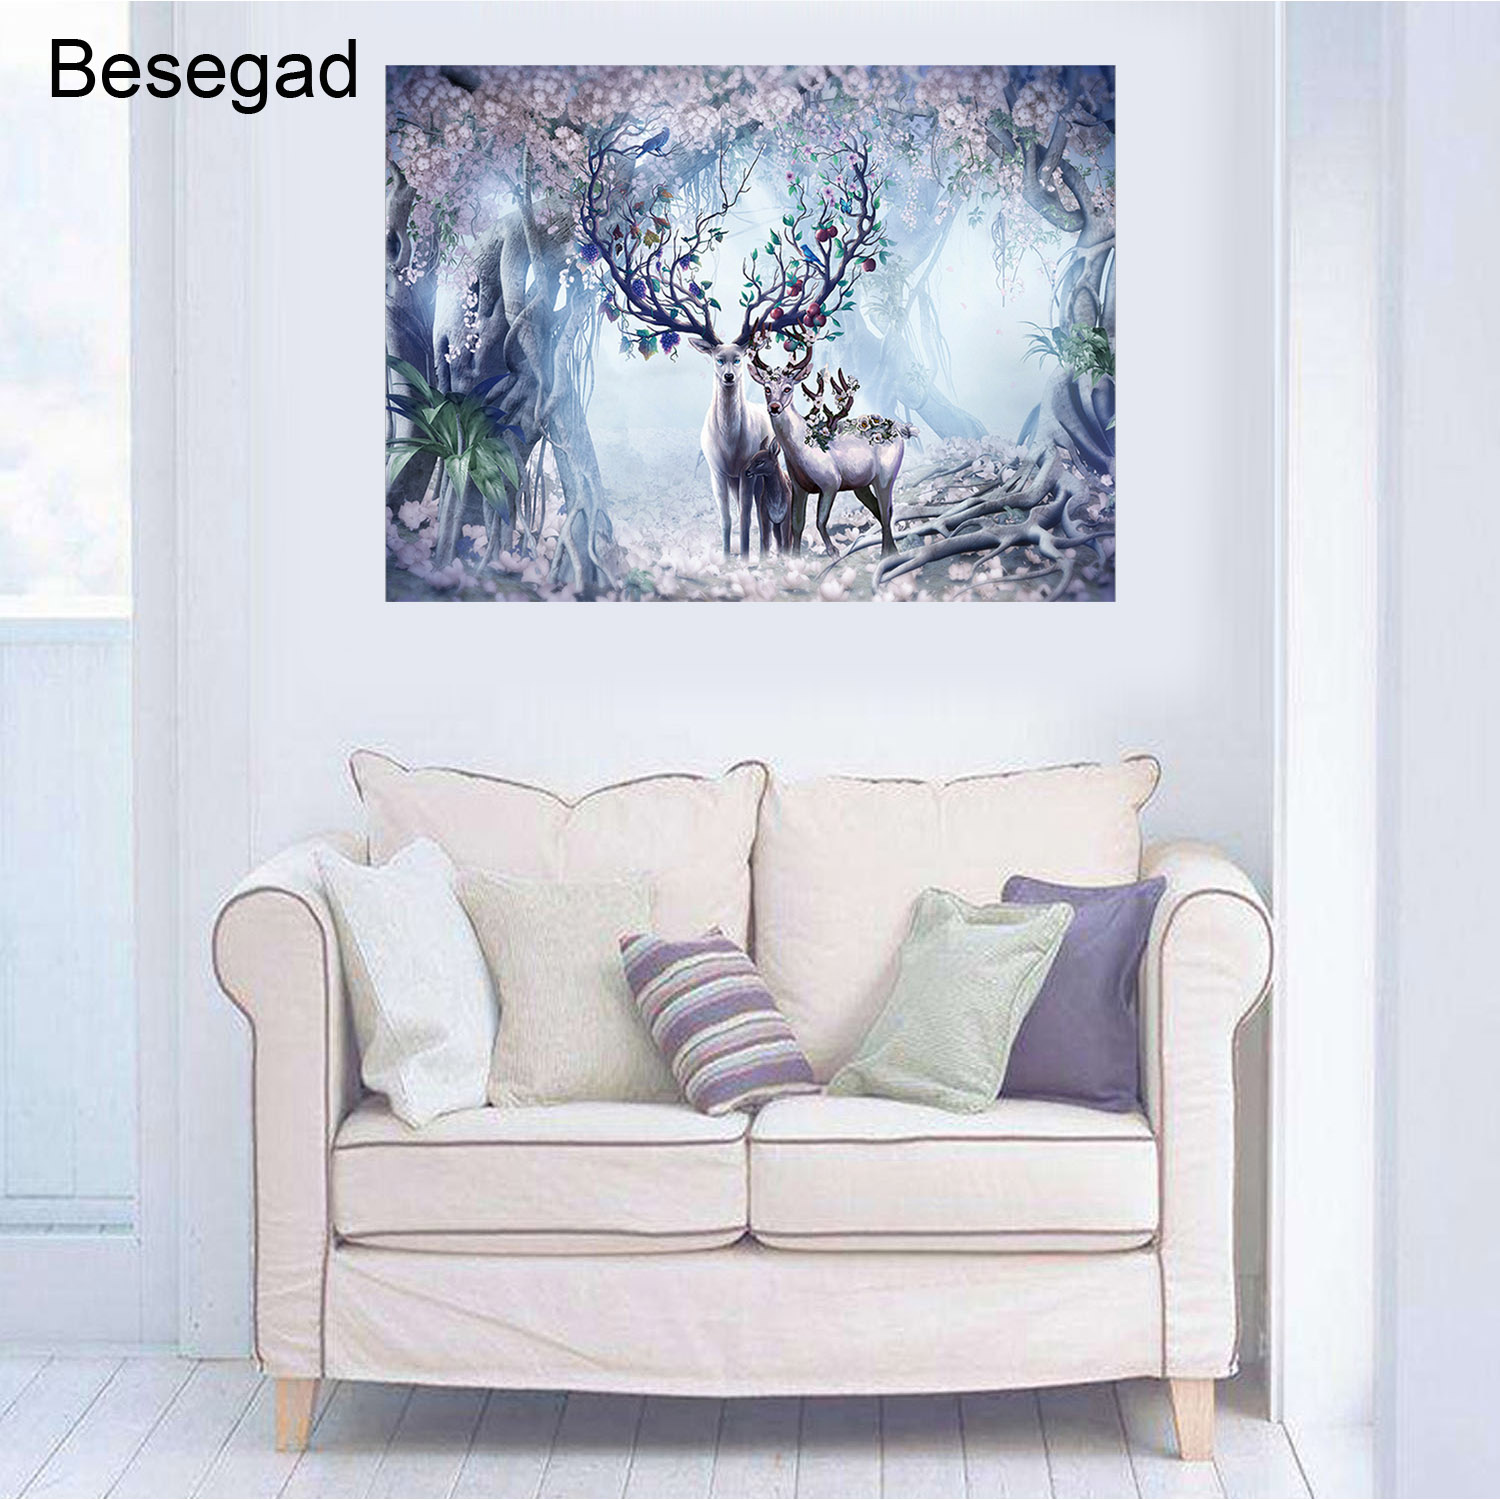 Besegad <font><b>500</b></font> <font><b>Pieces</b></font> Wood Classic Elk <font><b>Jigsaw</b></font> <font><b>Puzzle</b></font> Set Toy For Children Adults Develop Patience Focus Reduce Pressure <font><b>Puzzle</b></font> Gift image